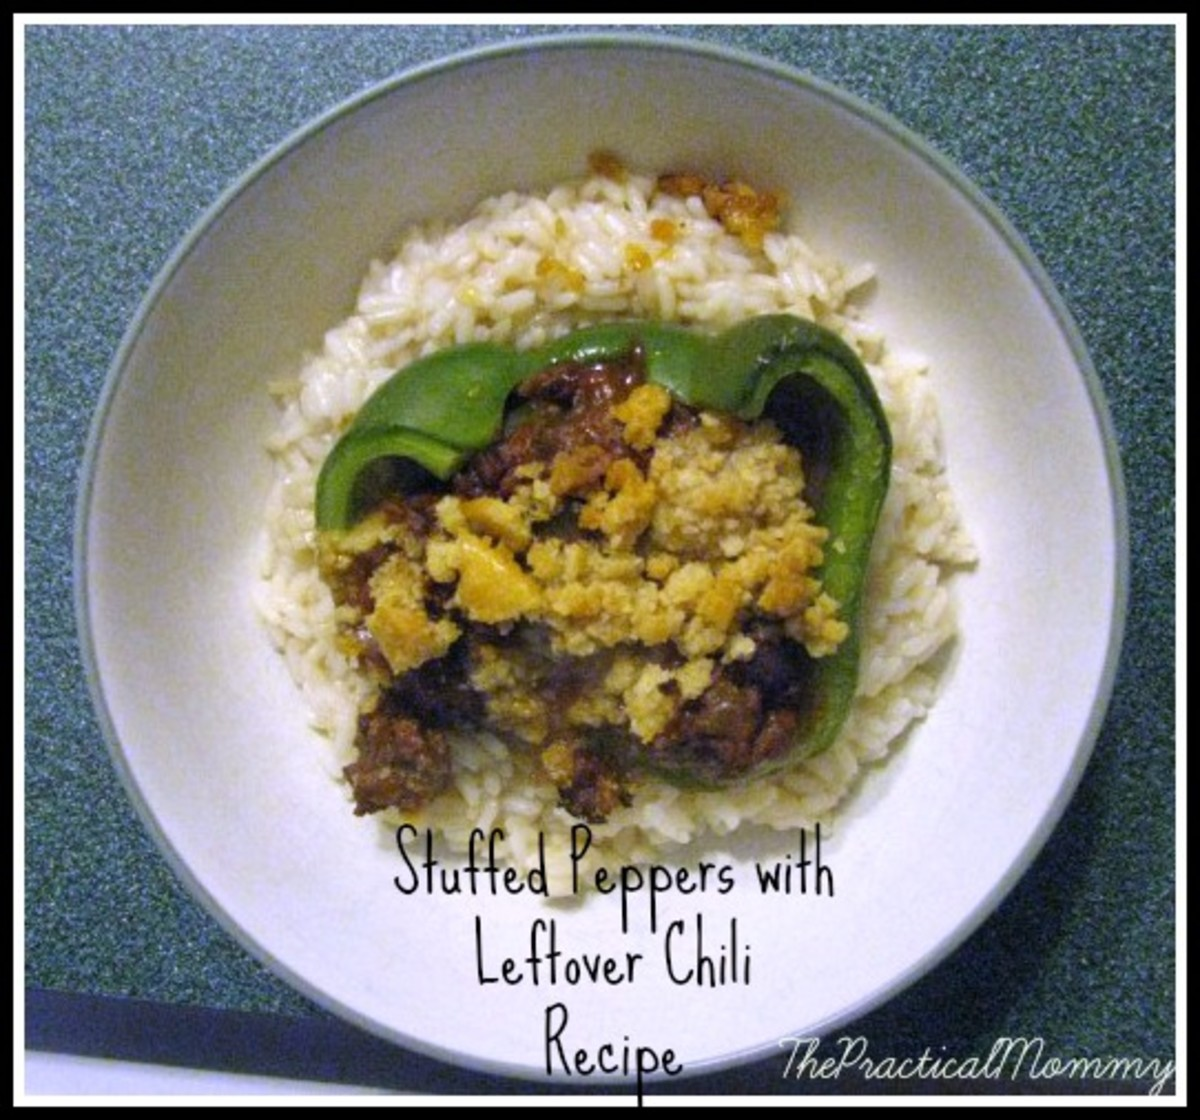 Recipe for chili-stuffed green peppers over rice.